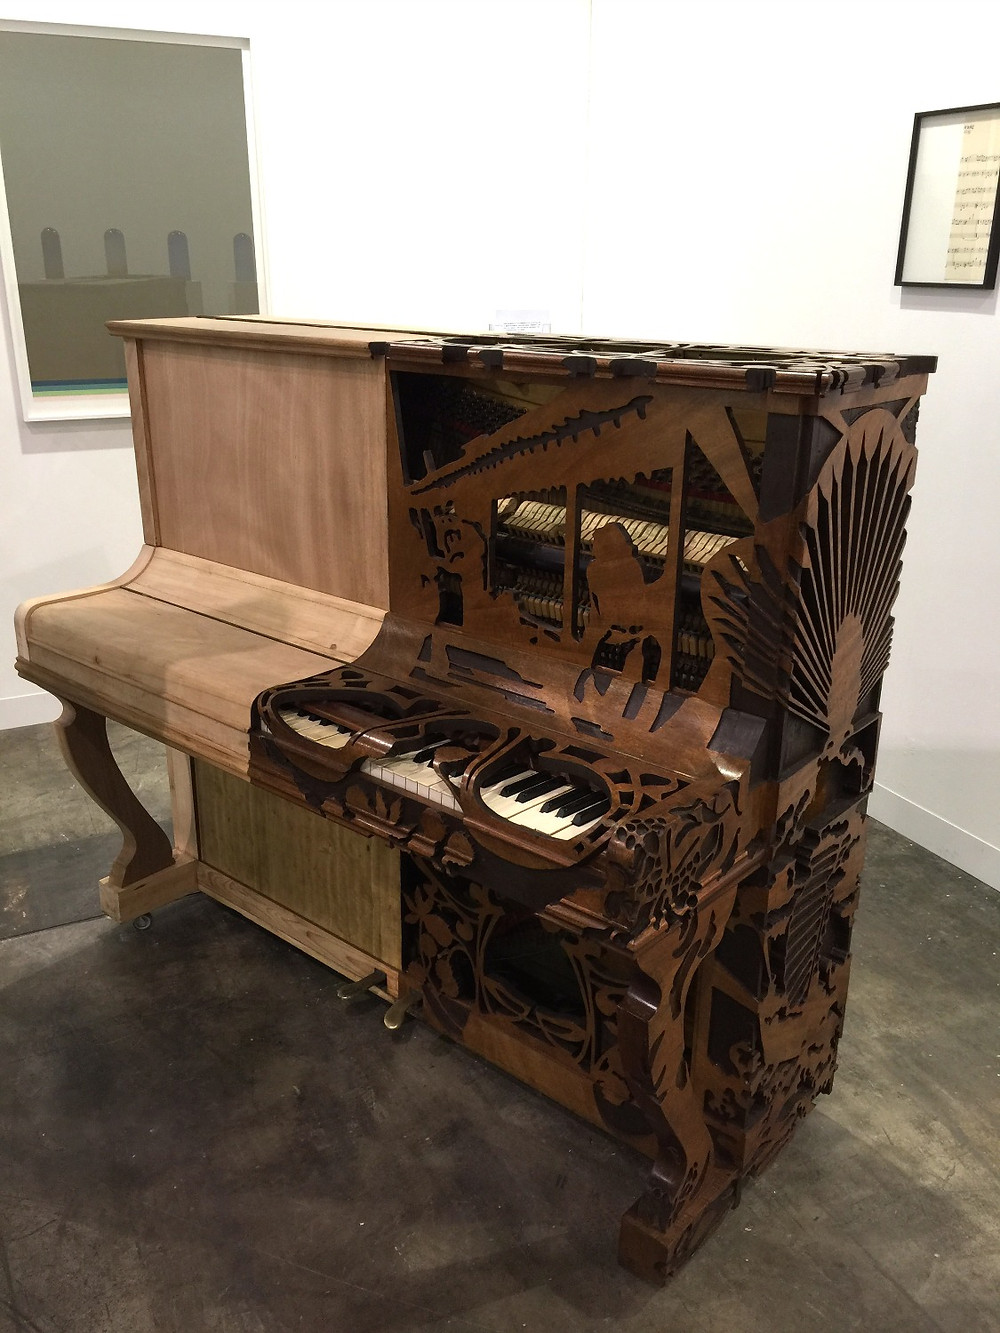 unknown | recycled wooden piano | Art Basel HK 2016